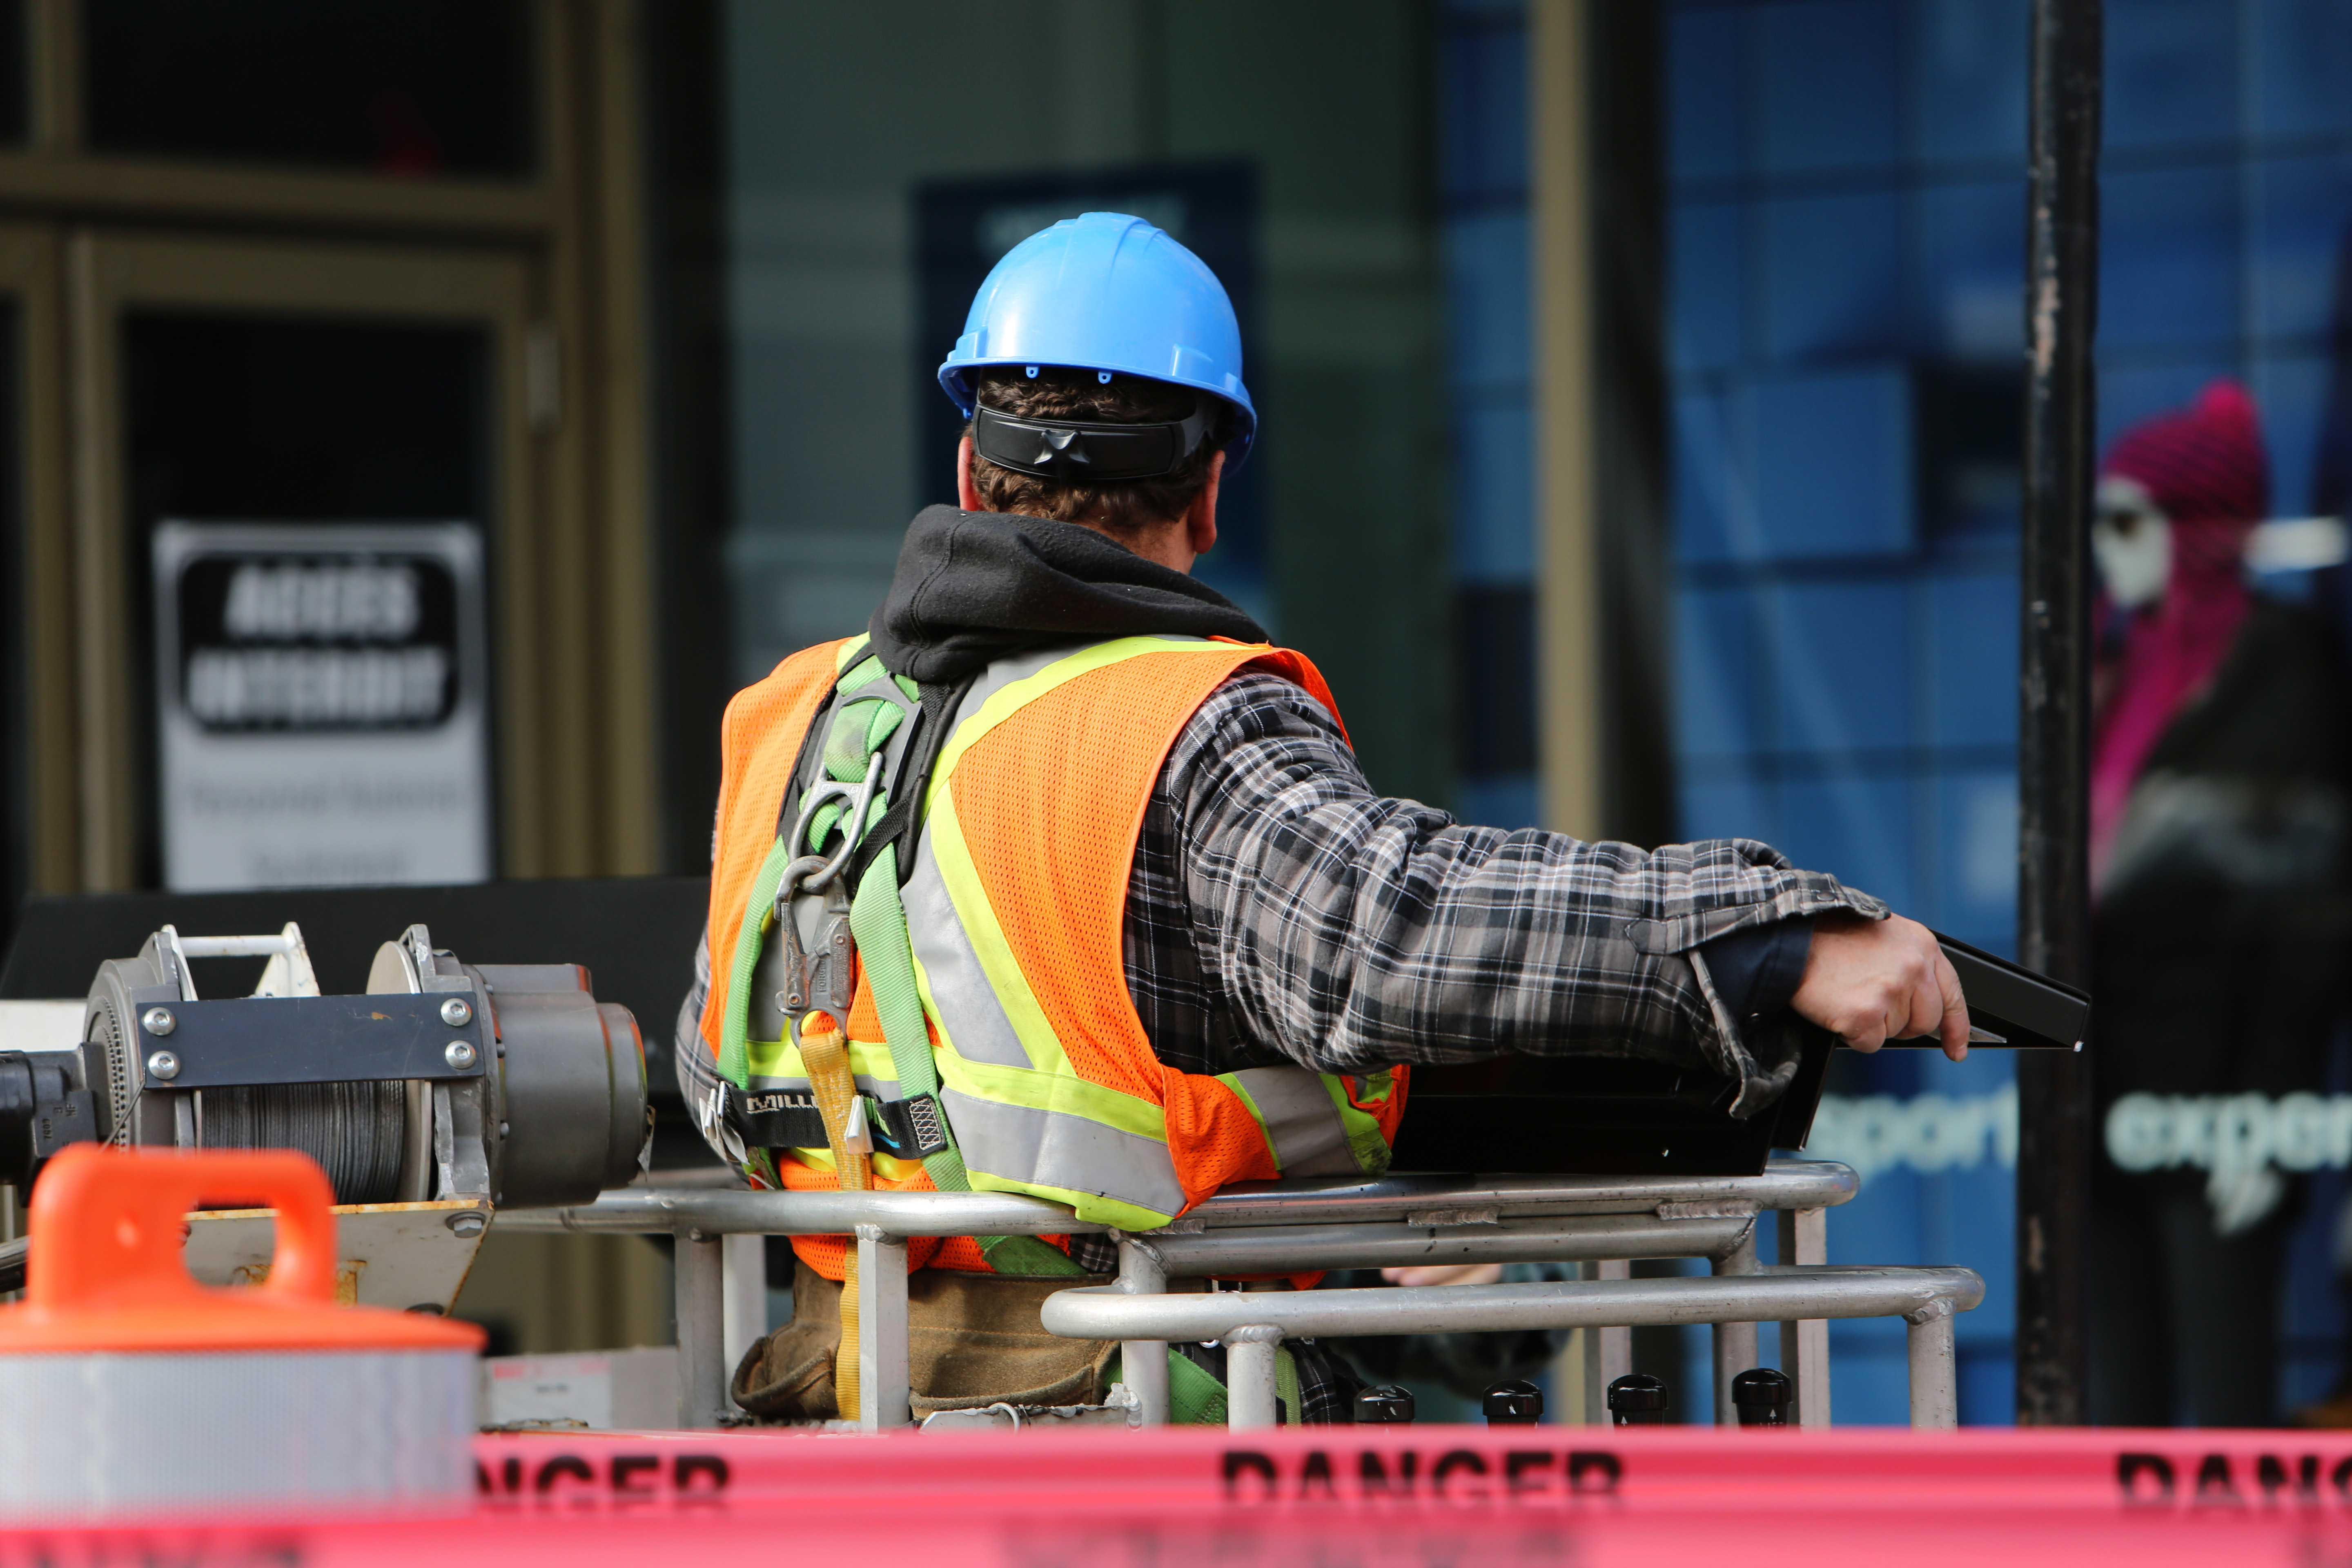 facility maintenance worker in safety gear